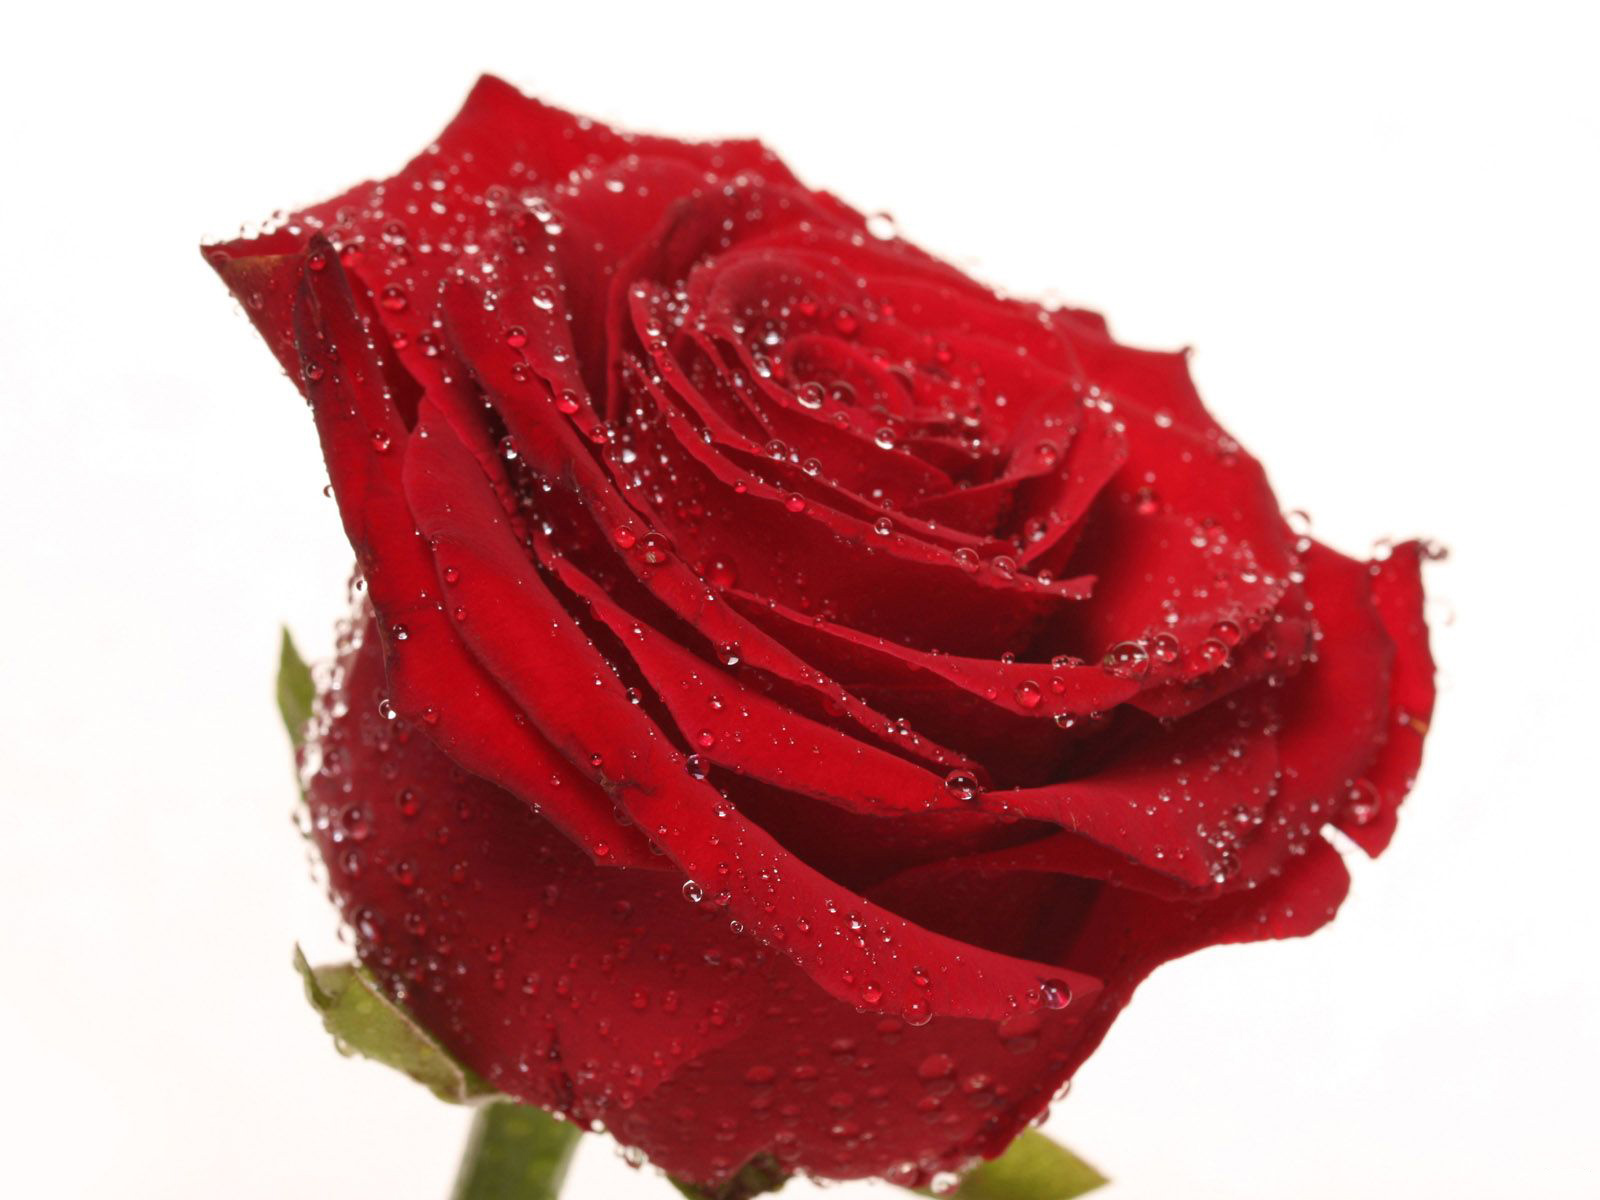 http://4.bp.blogspot.com/-akEQCGjZgRE/TkEiozTA2rI/AAAAAAAAA28/rDNYZj8_wxk/s1600/The-best-top-desktop-roses-wallpapers-hd-rose-wallpaper-22-white-background-red-rose.jpg